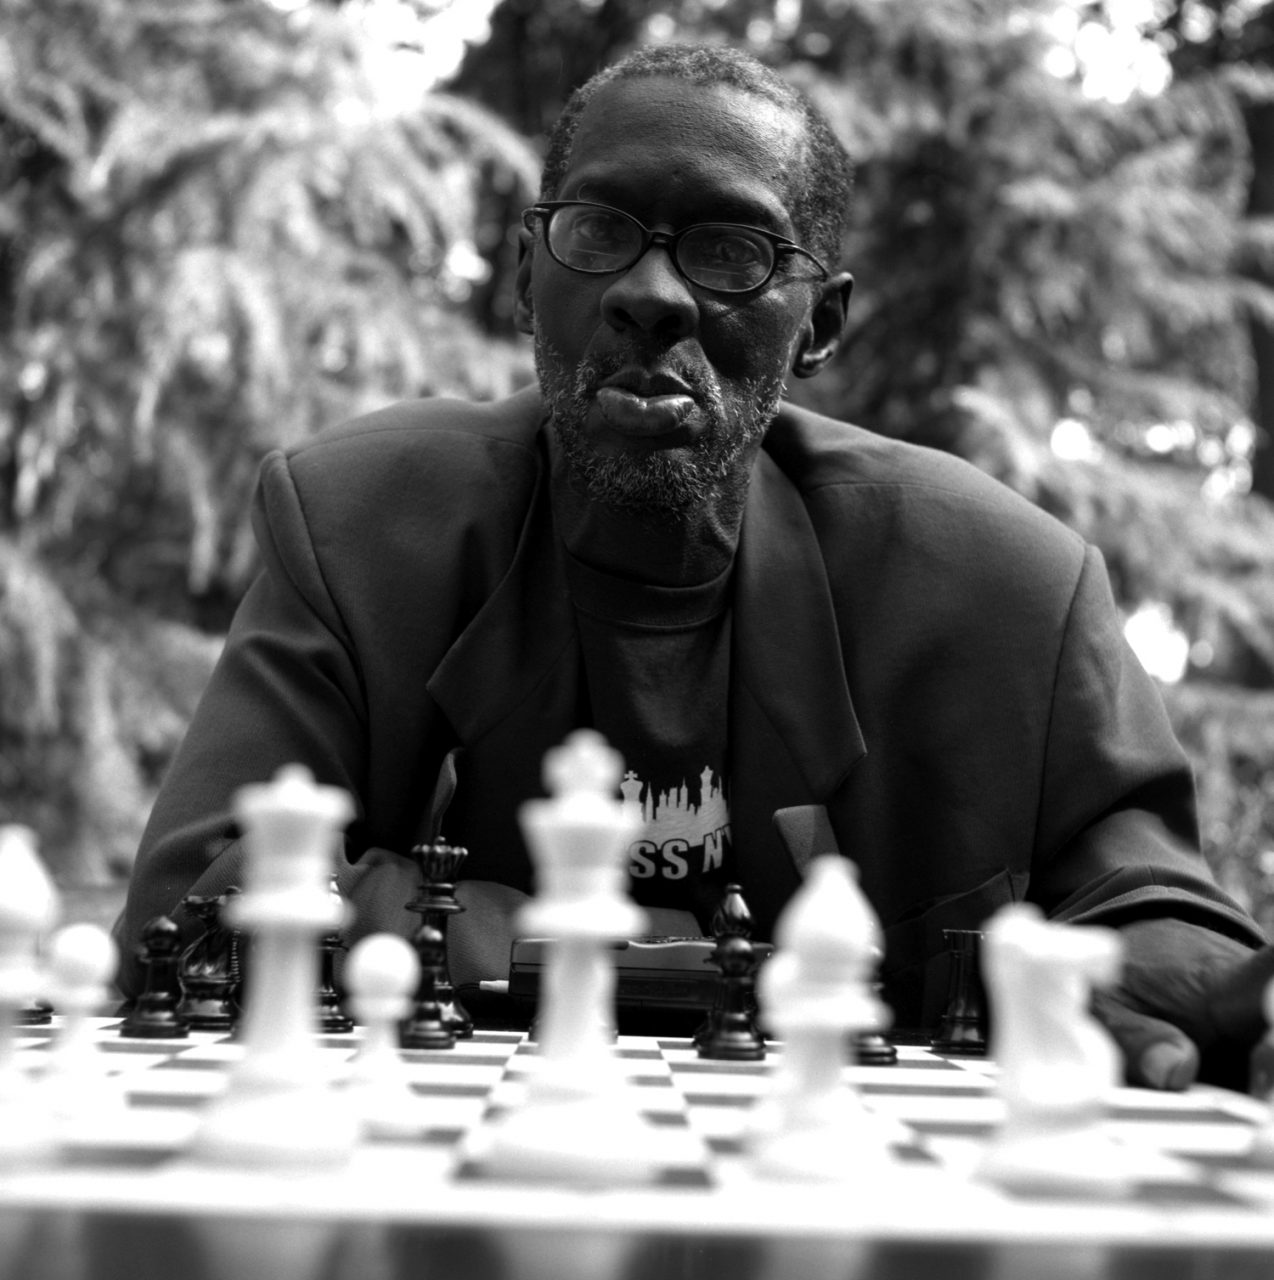 Black Man playing Chess Washington Park